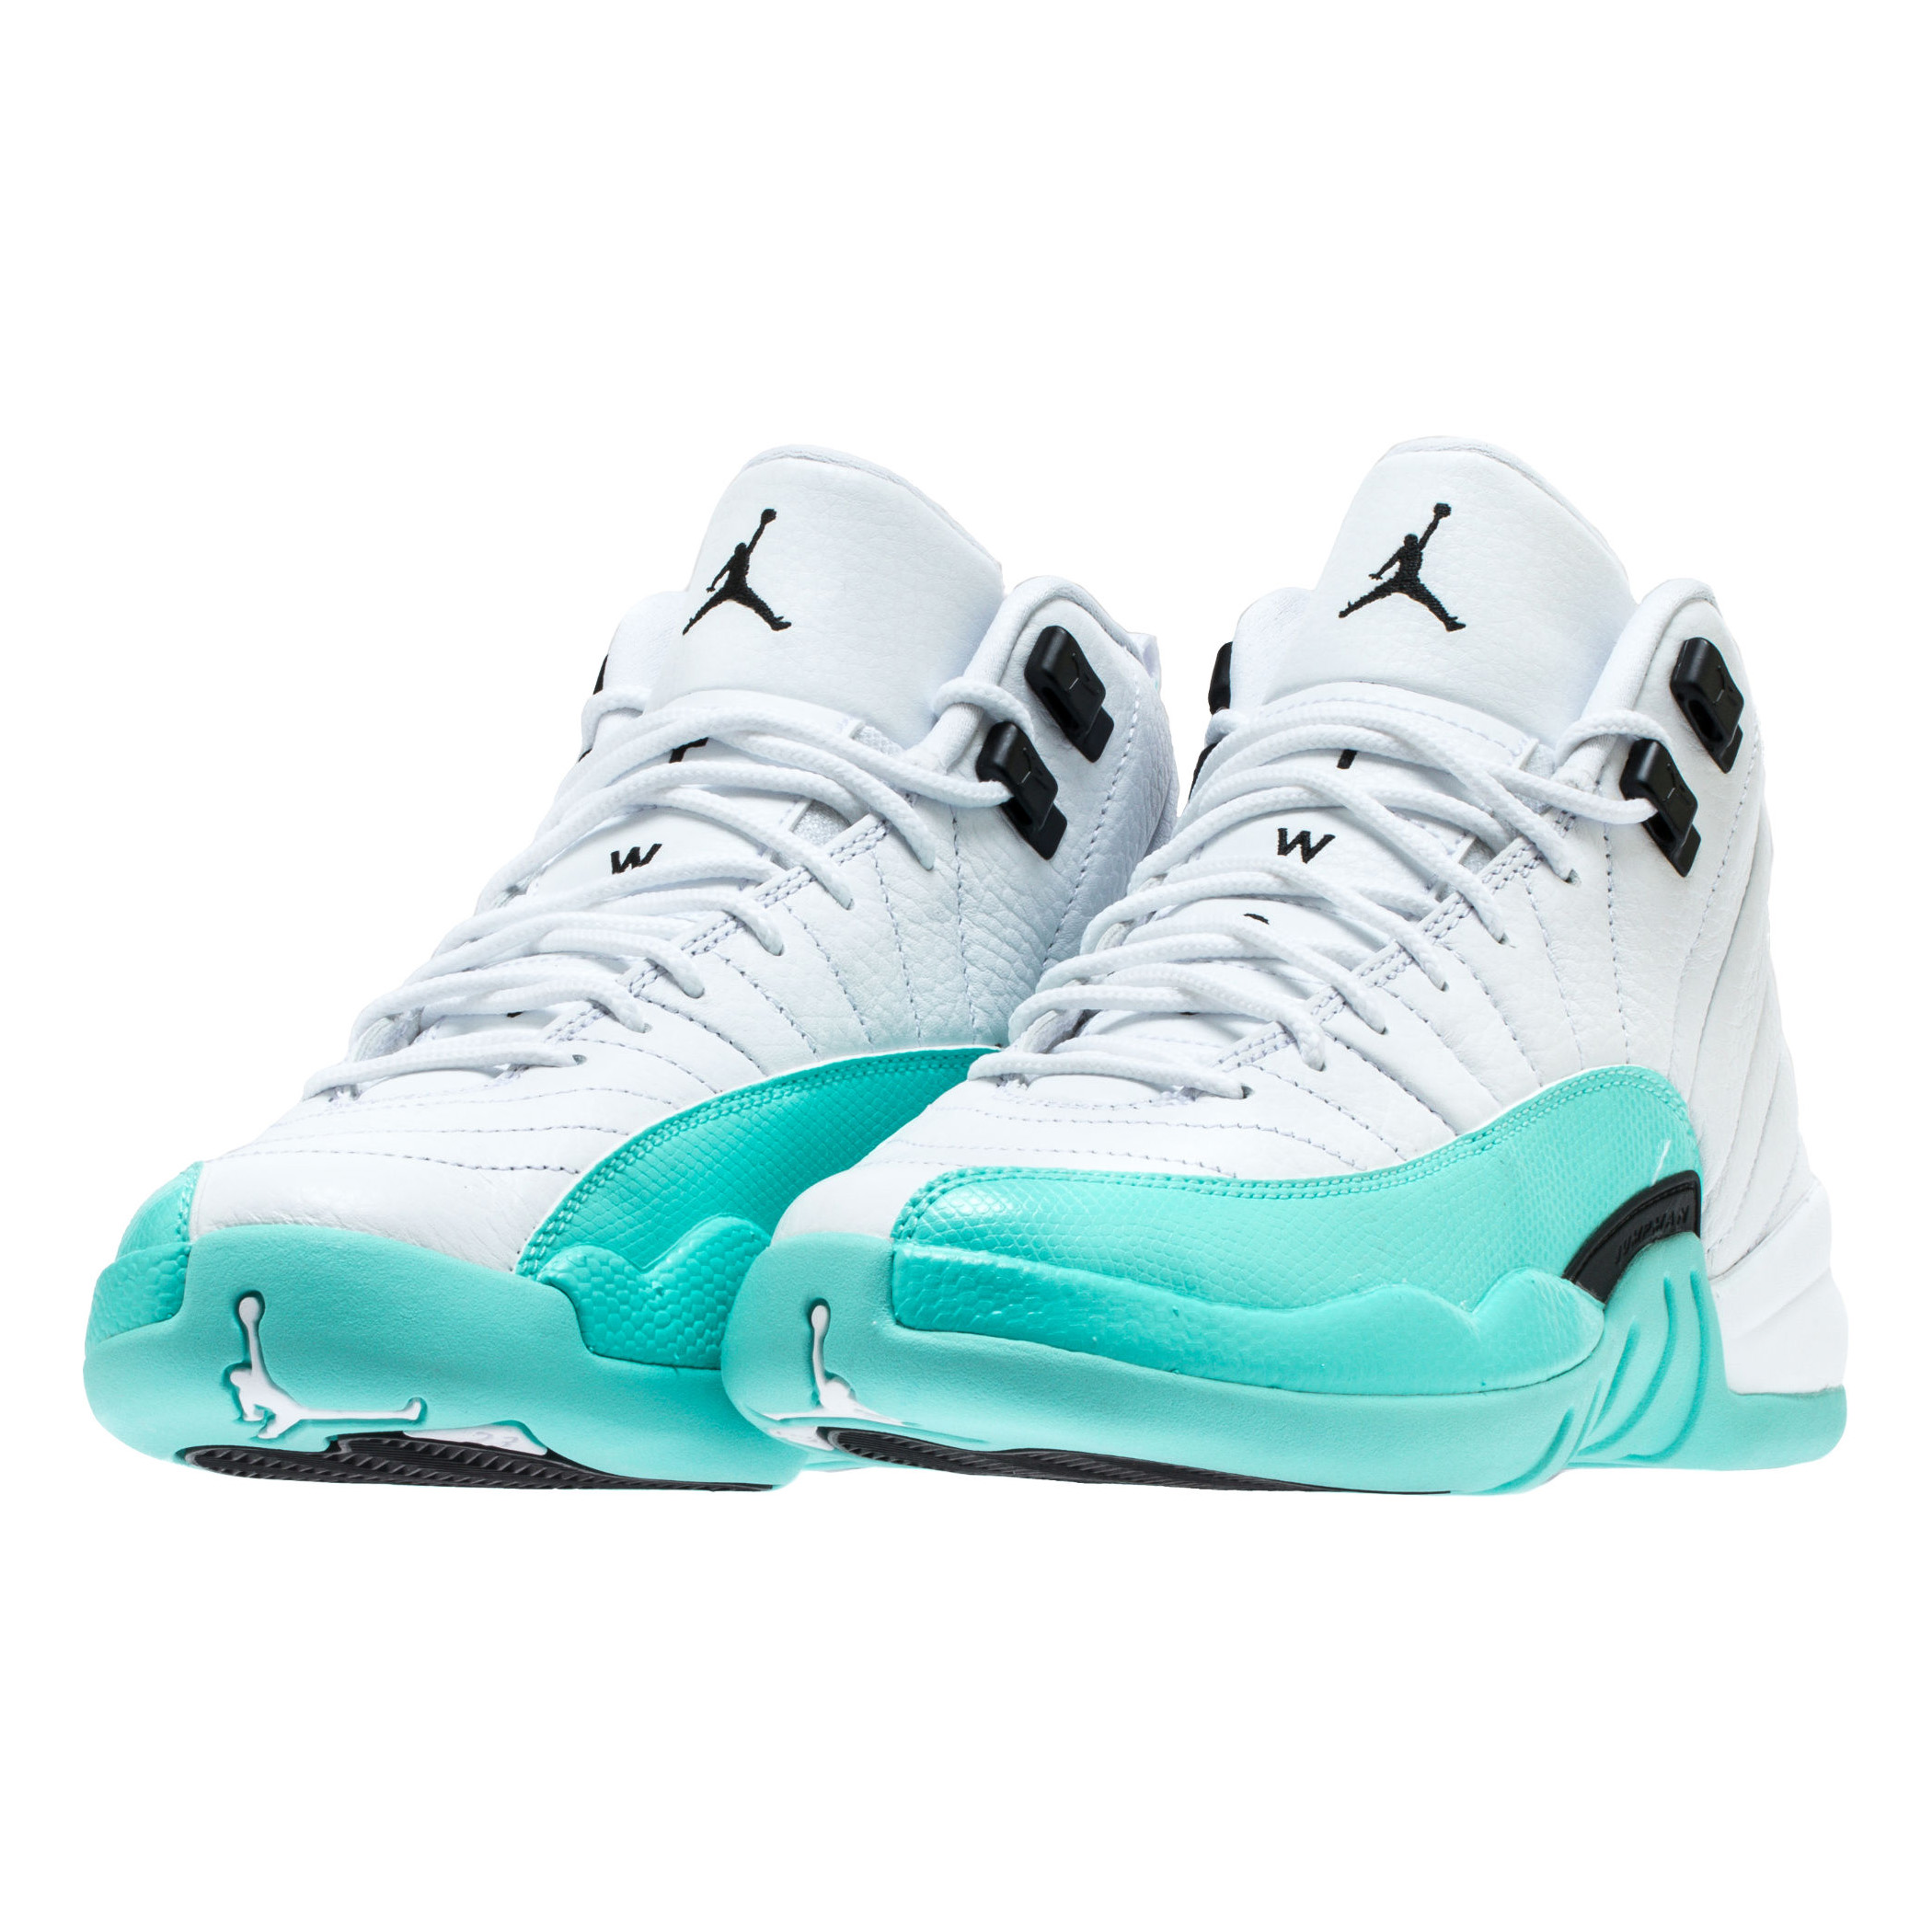 best website 908a9 cb6e8 Check Out This 'Light Aqua' Air Jordan 12 Retro - WearTesters